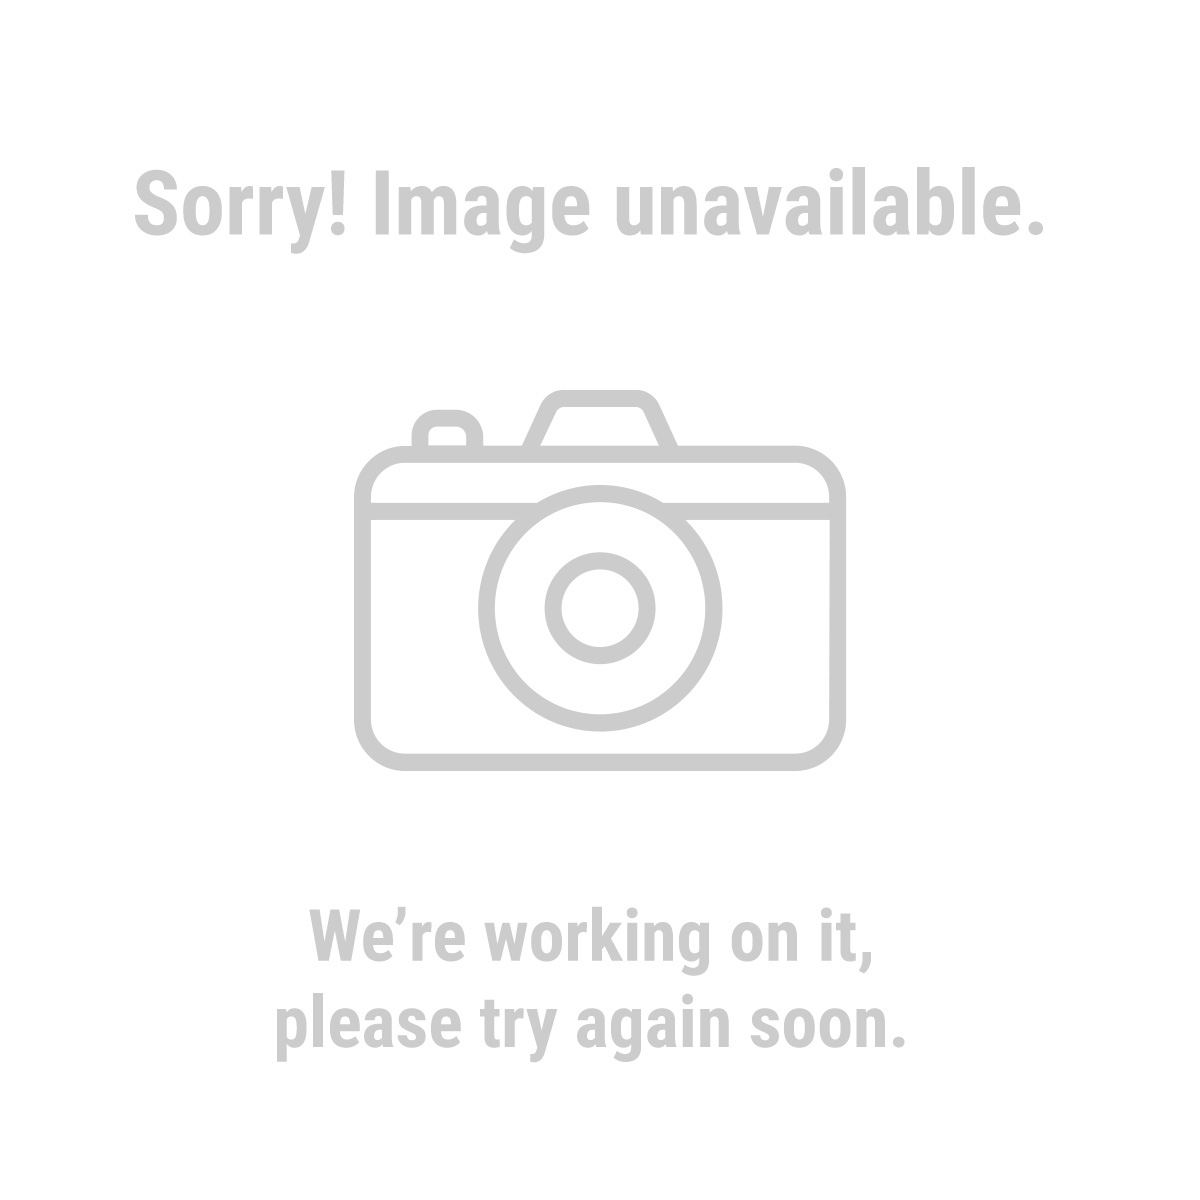 HFT® 93687 125 Volt, 15 Amp Female Plug Connector